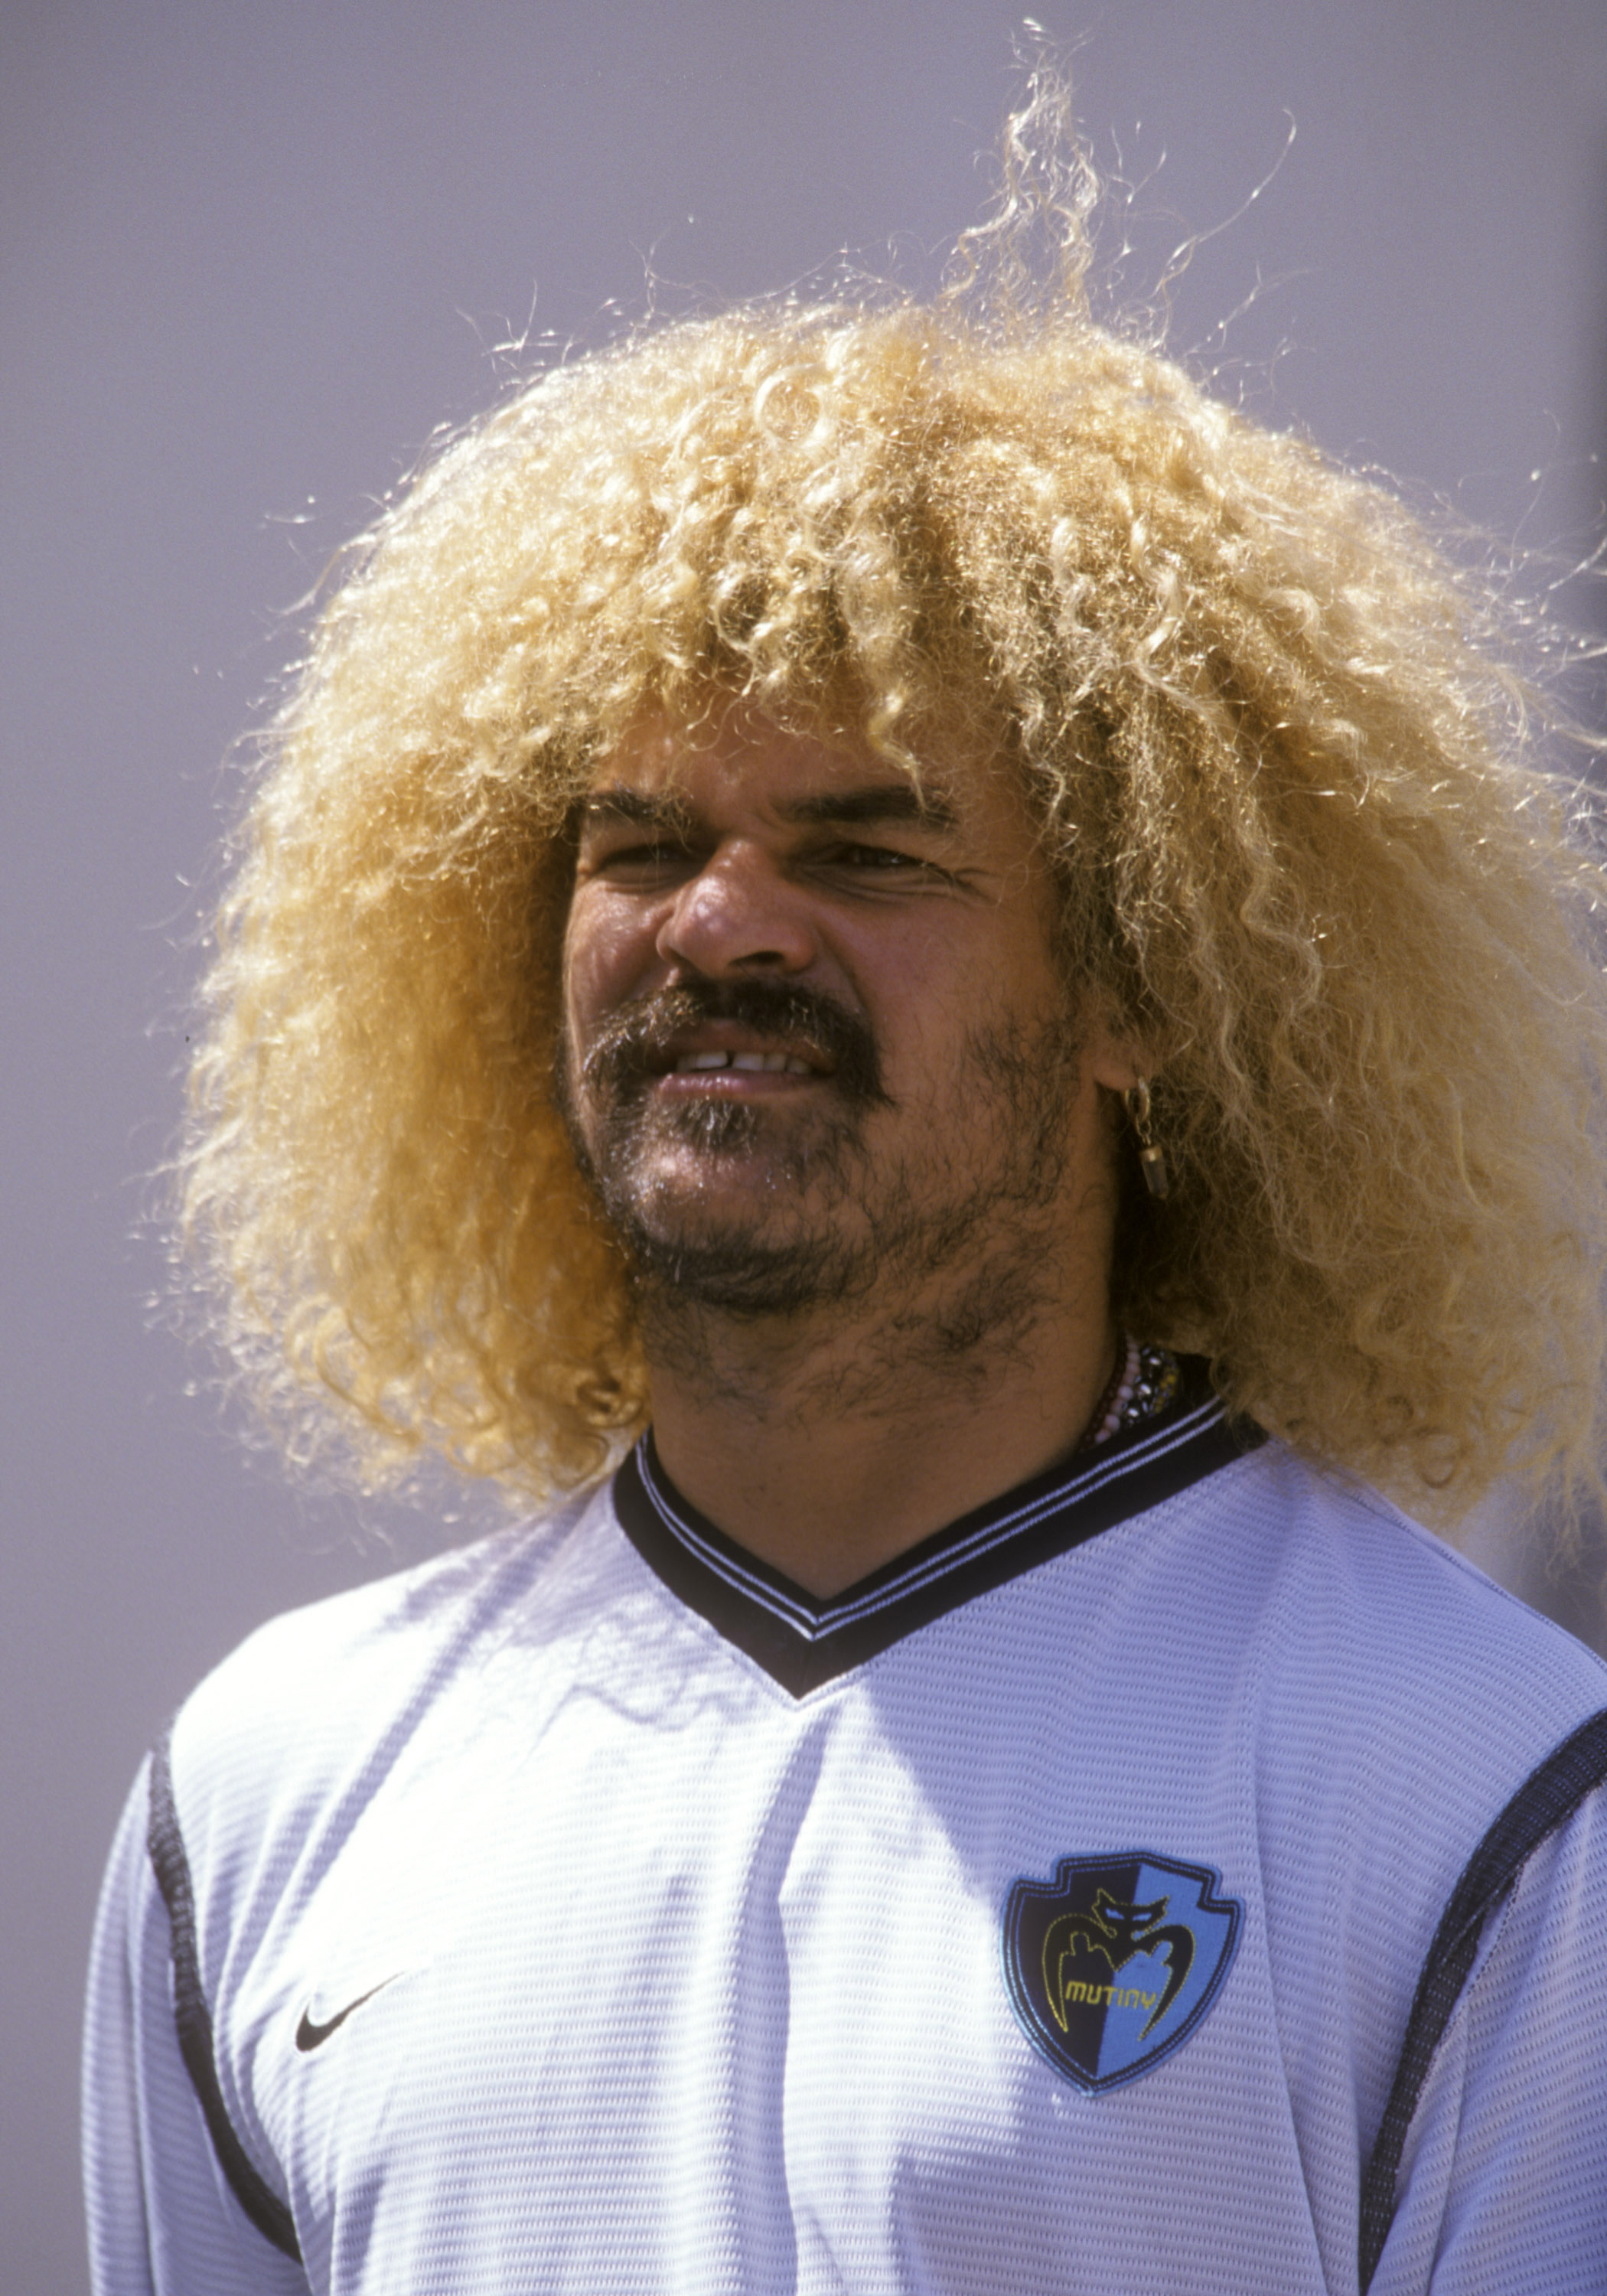 Soccer star Carlos Valderrama checks play during a soccer match in Tampa in June 2000. (Photo by Al Messerschmidt/WireImage)